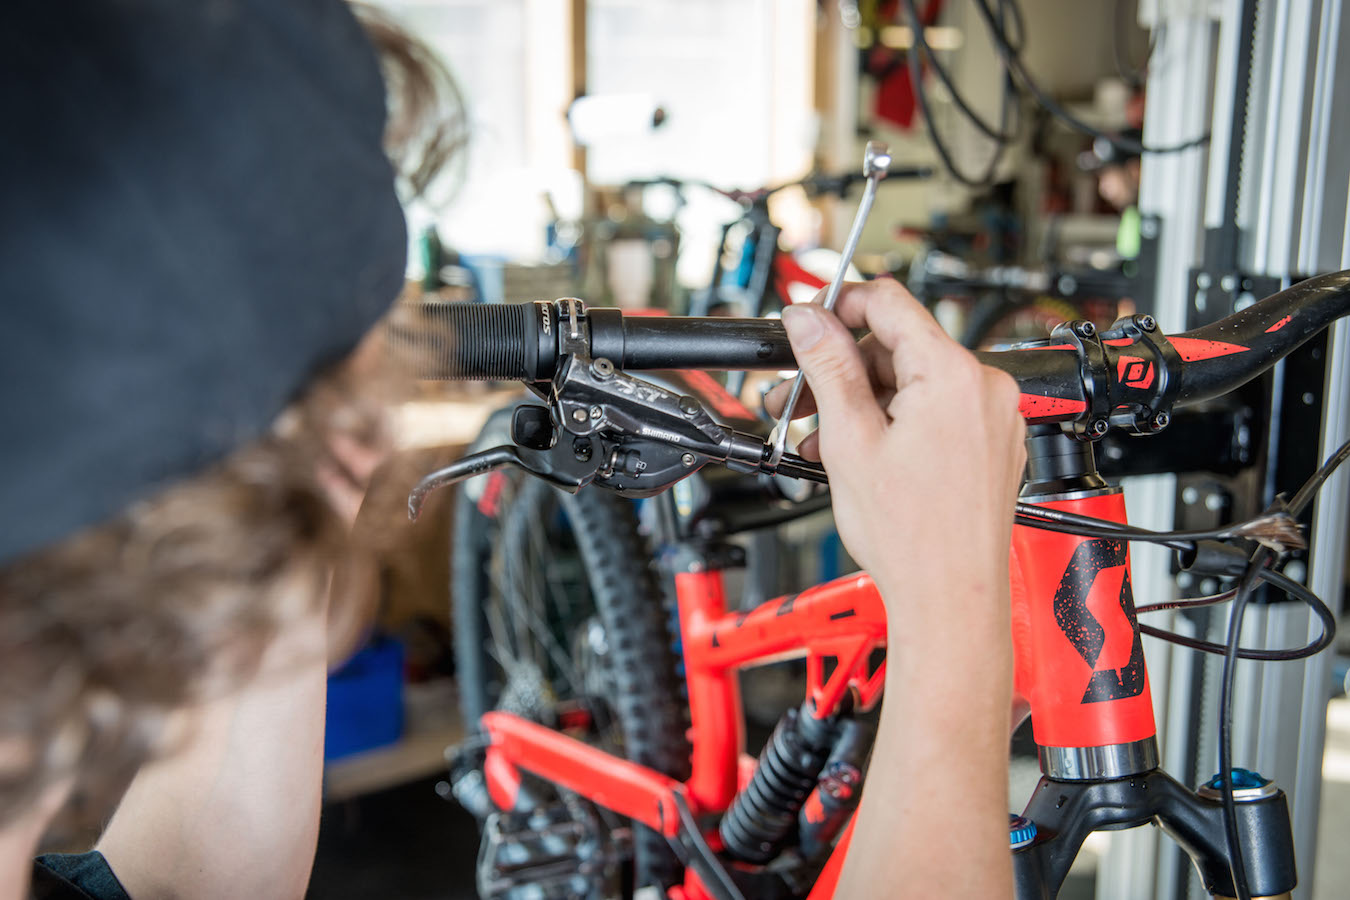 If you need bike service, come and see our experts at Sport Mitterer